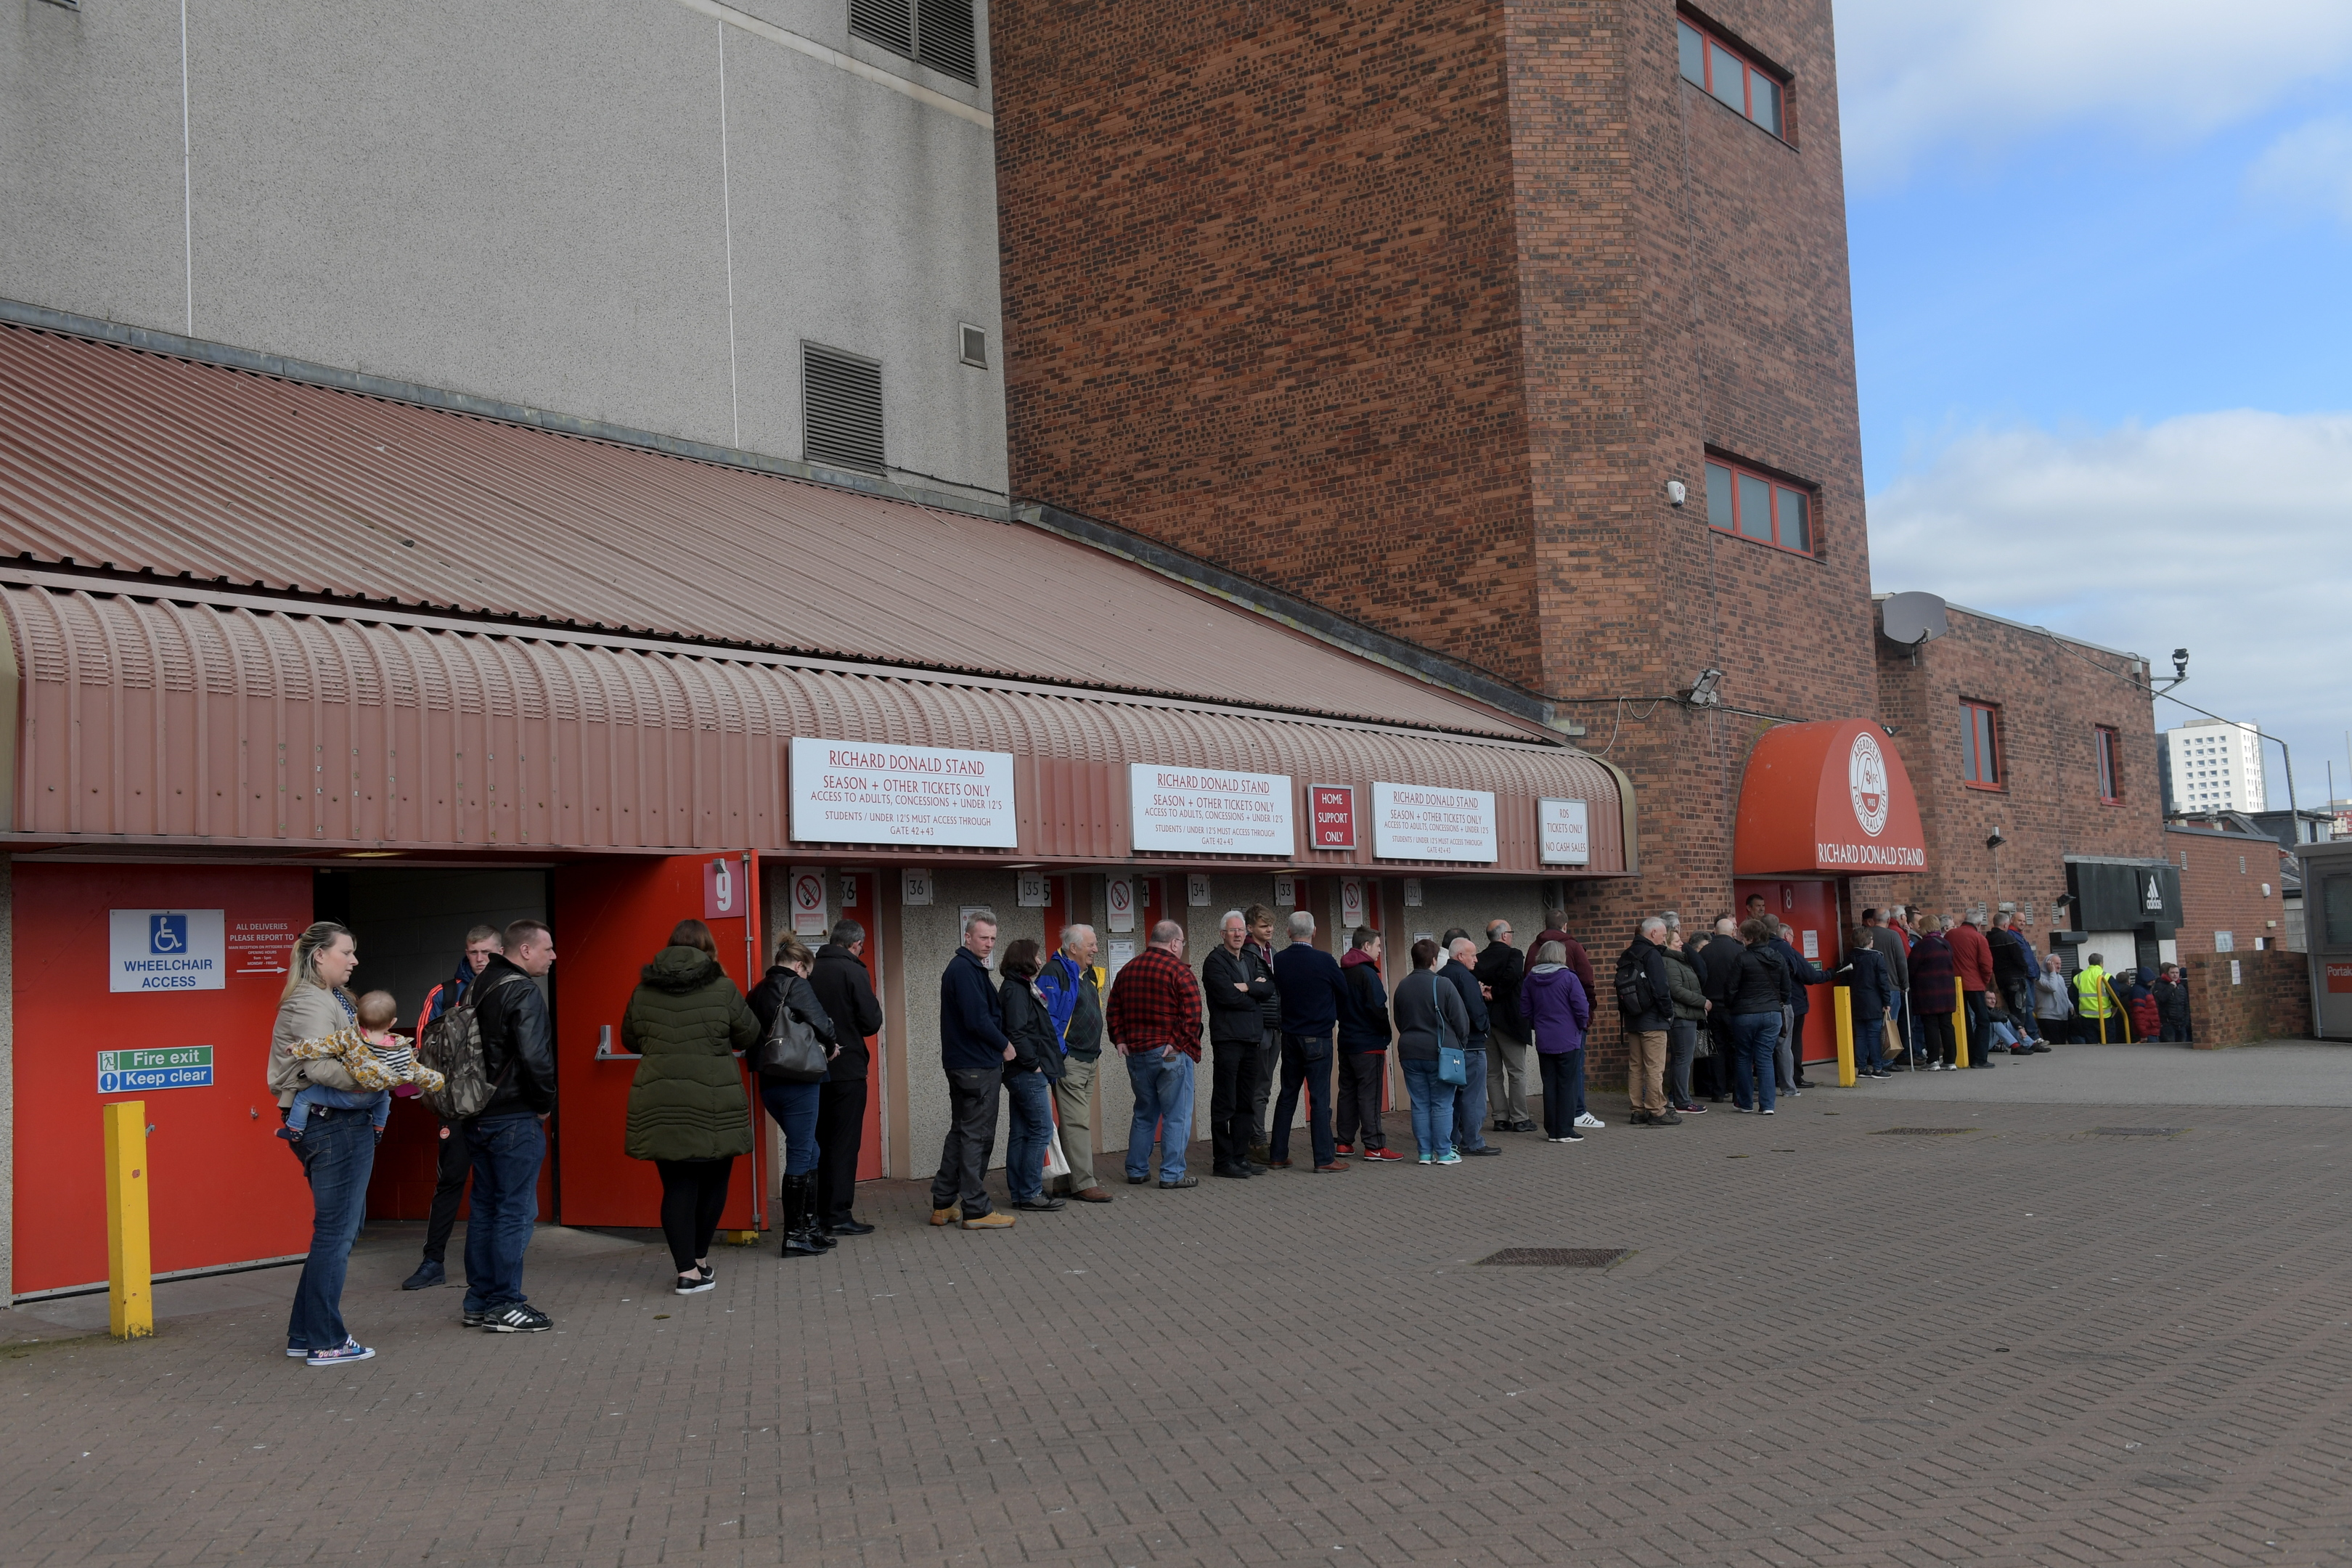 A queue formed at Pittodrie as tickets go on sale for Aberdeen's Scottish Cup final.